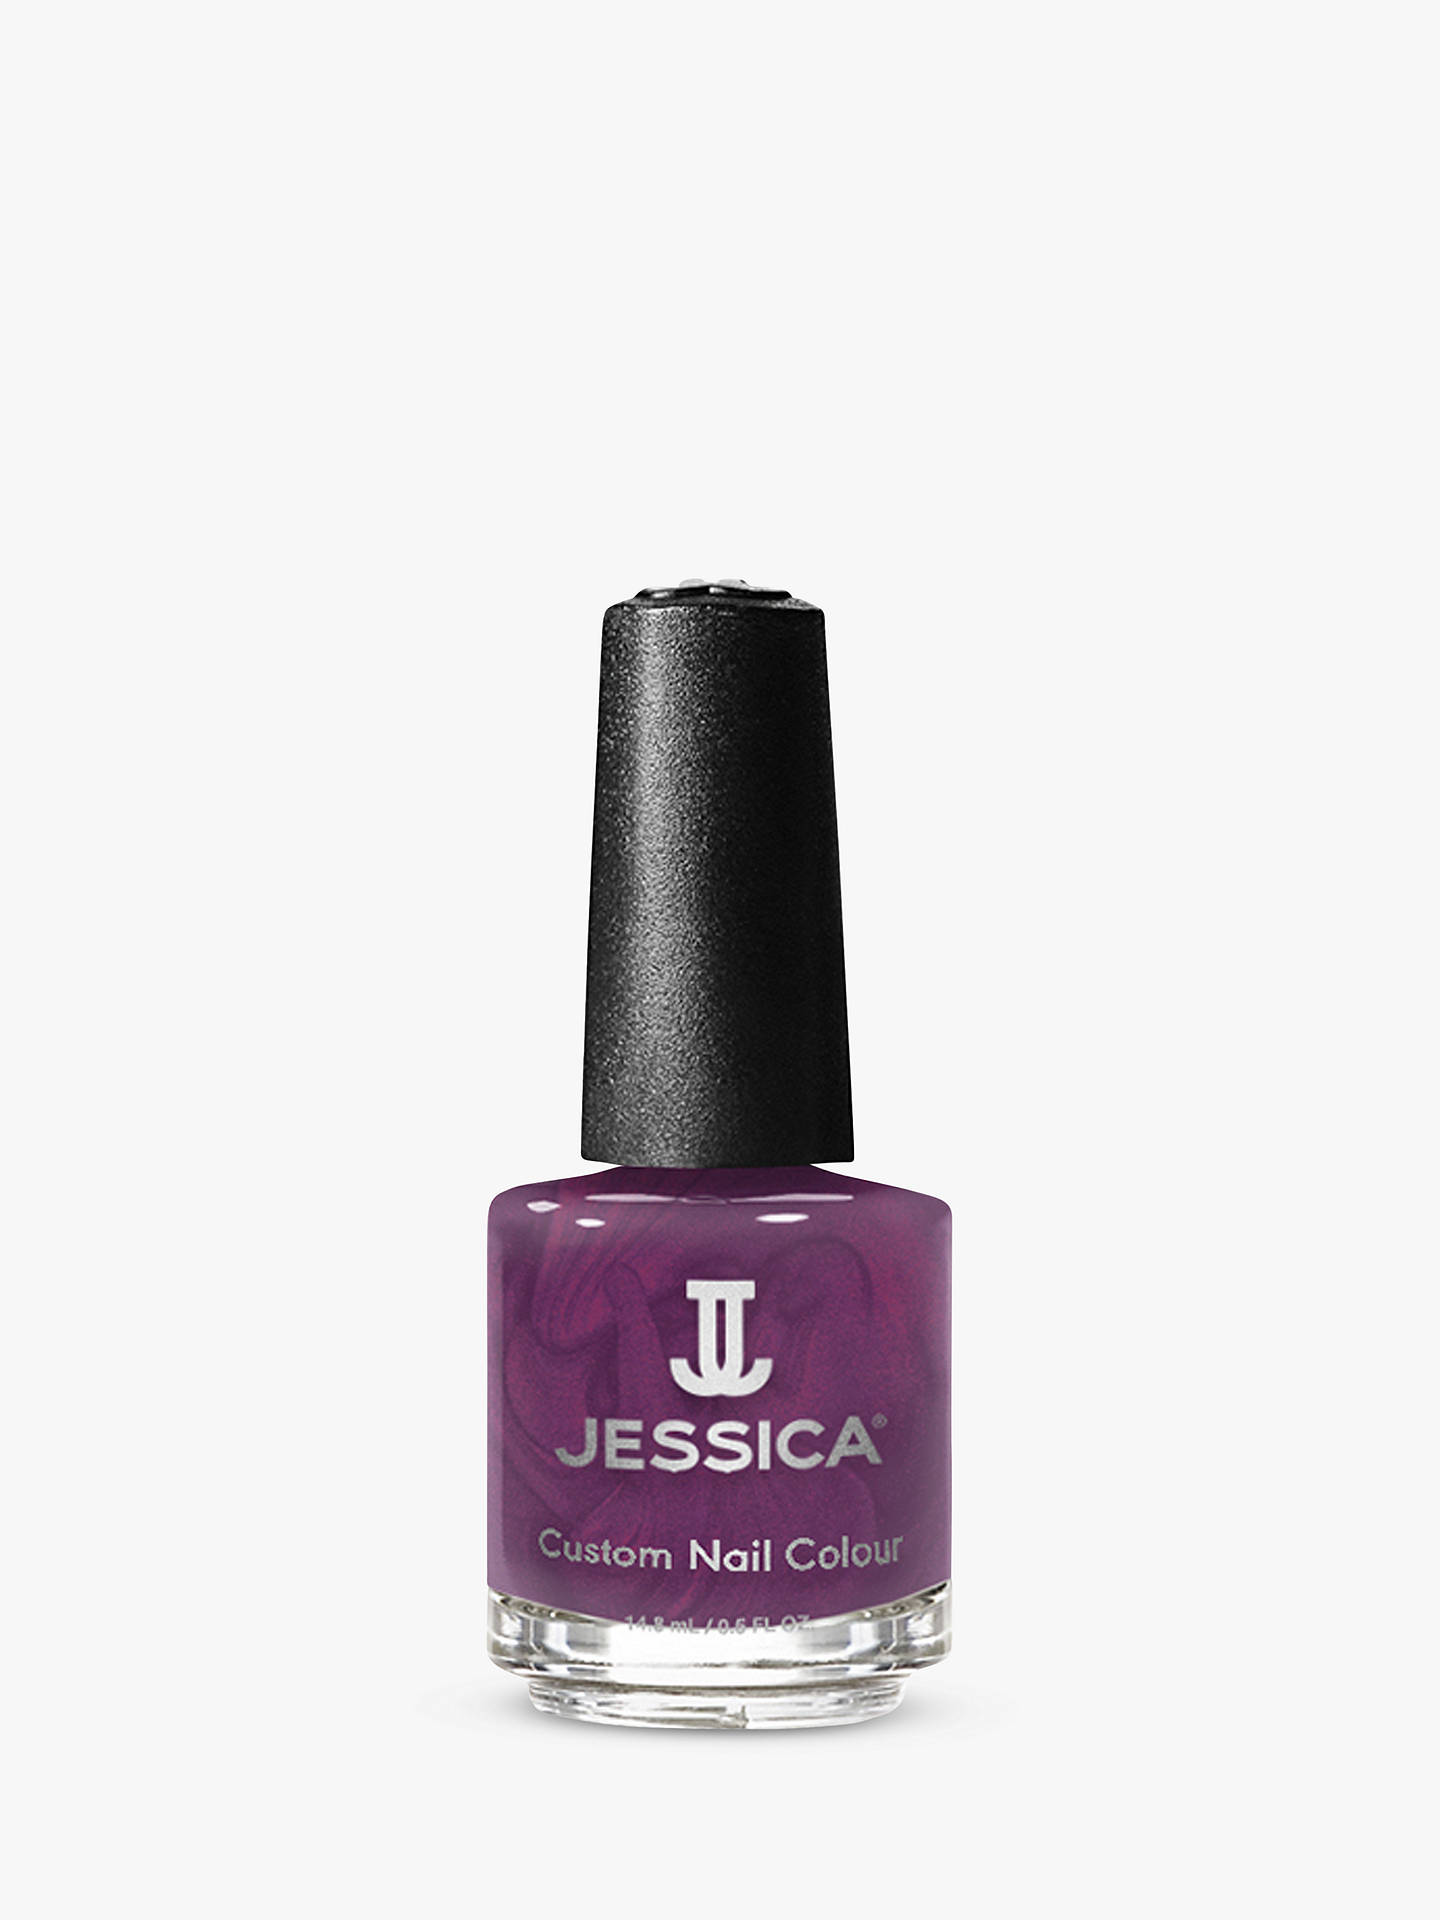 Buy Jessica Custom Nail Colour - Pinks, A Night at the Opera, Opening Night Online at johnlewis.com